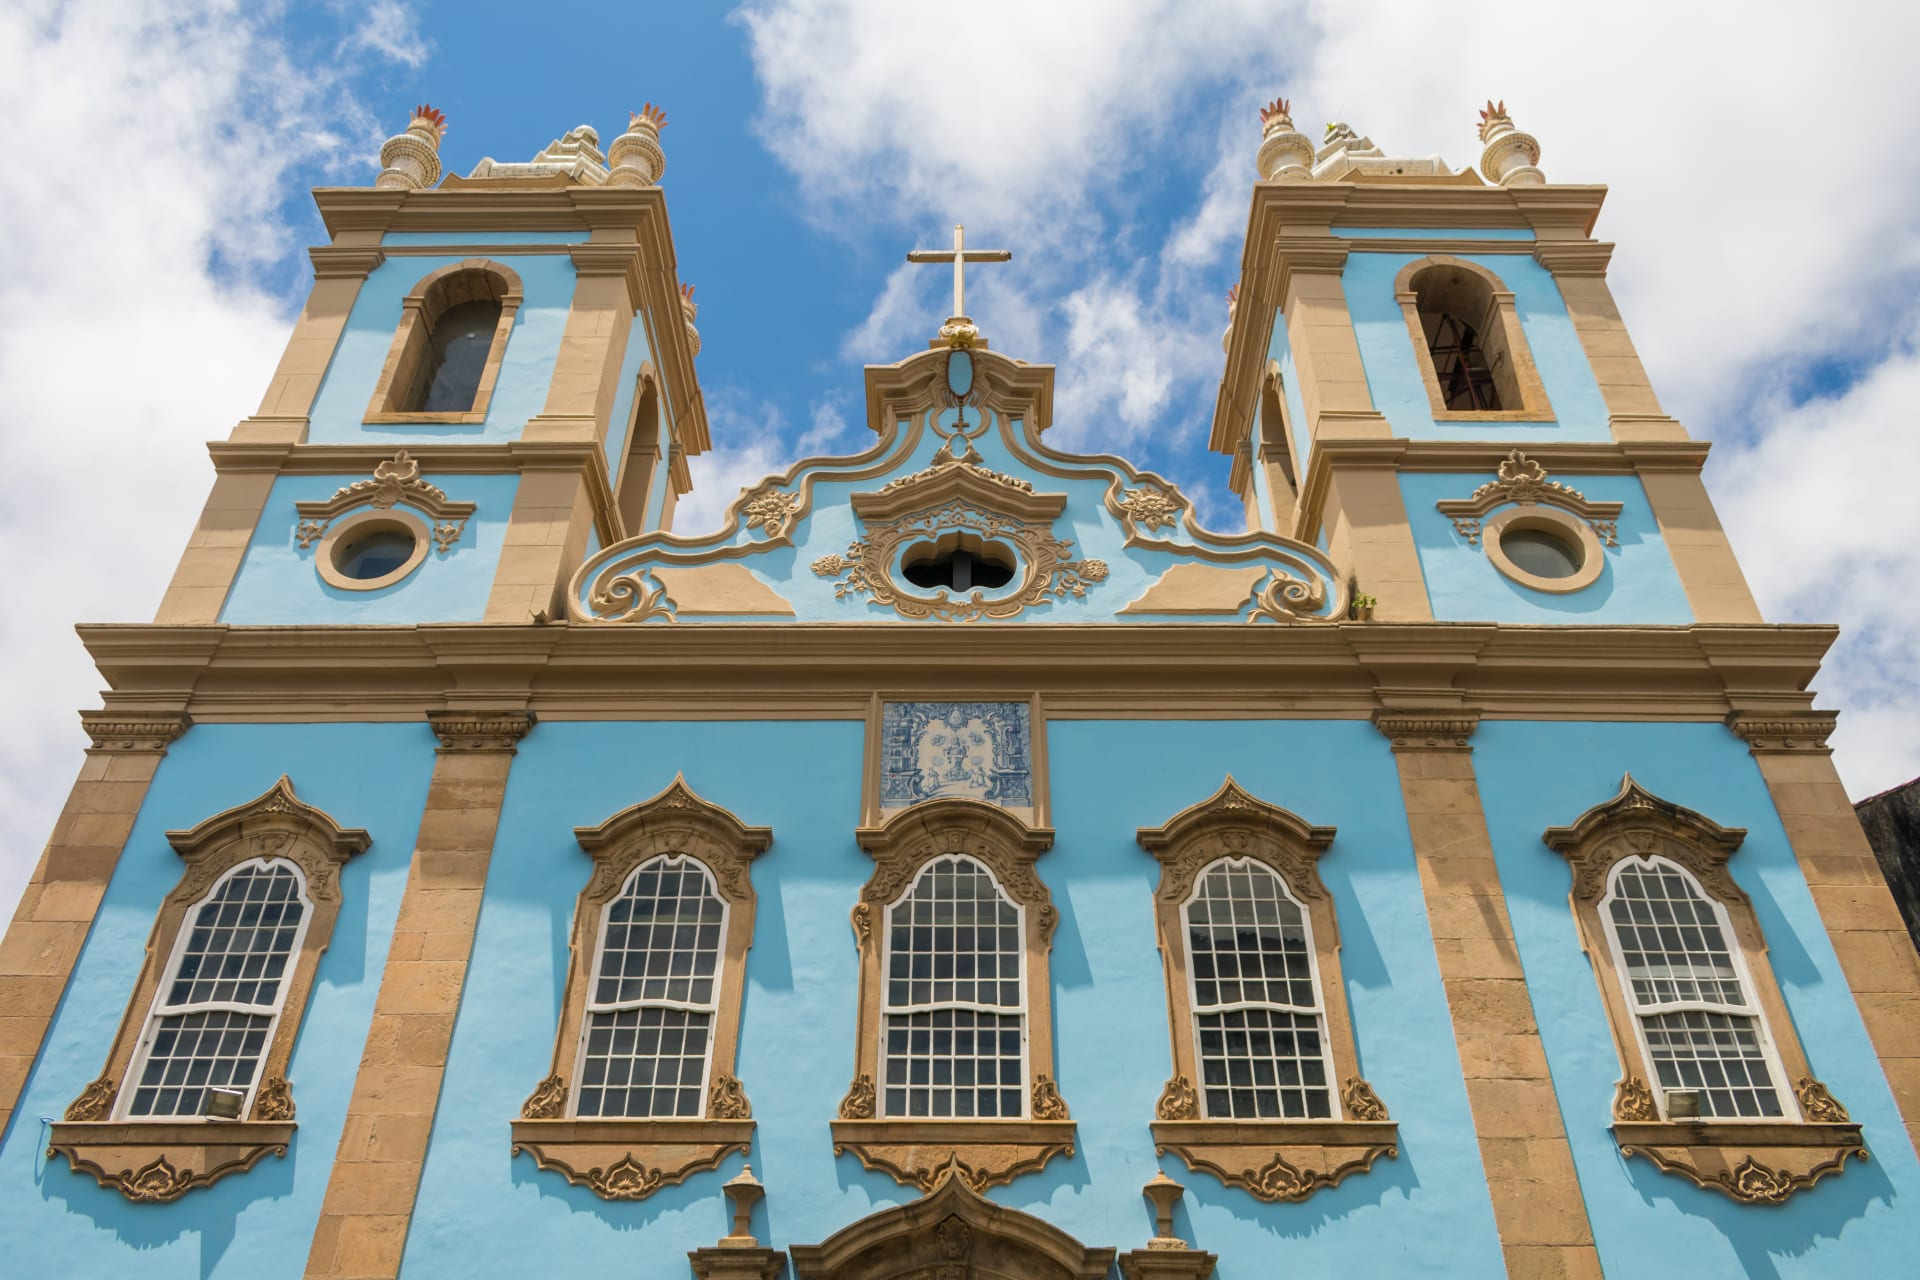 Salvador Bahia - Salvador 4: Church of Our Lady of the Rosary of the Black People and the Blessing Tuesdays in Bahia